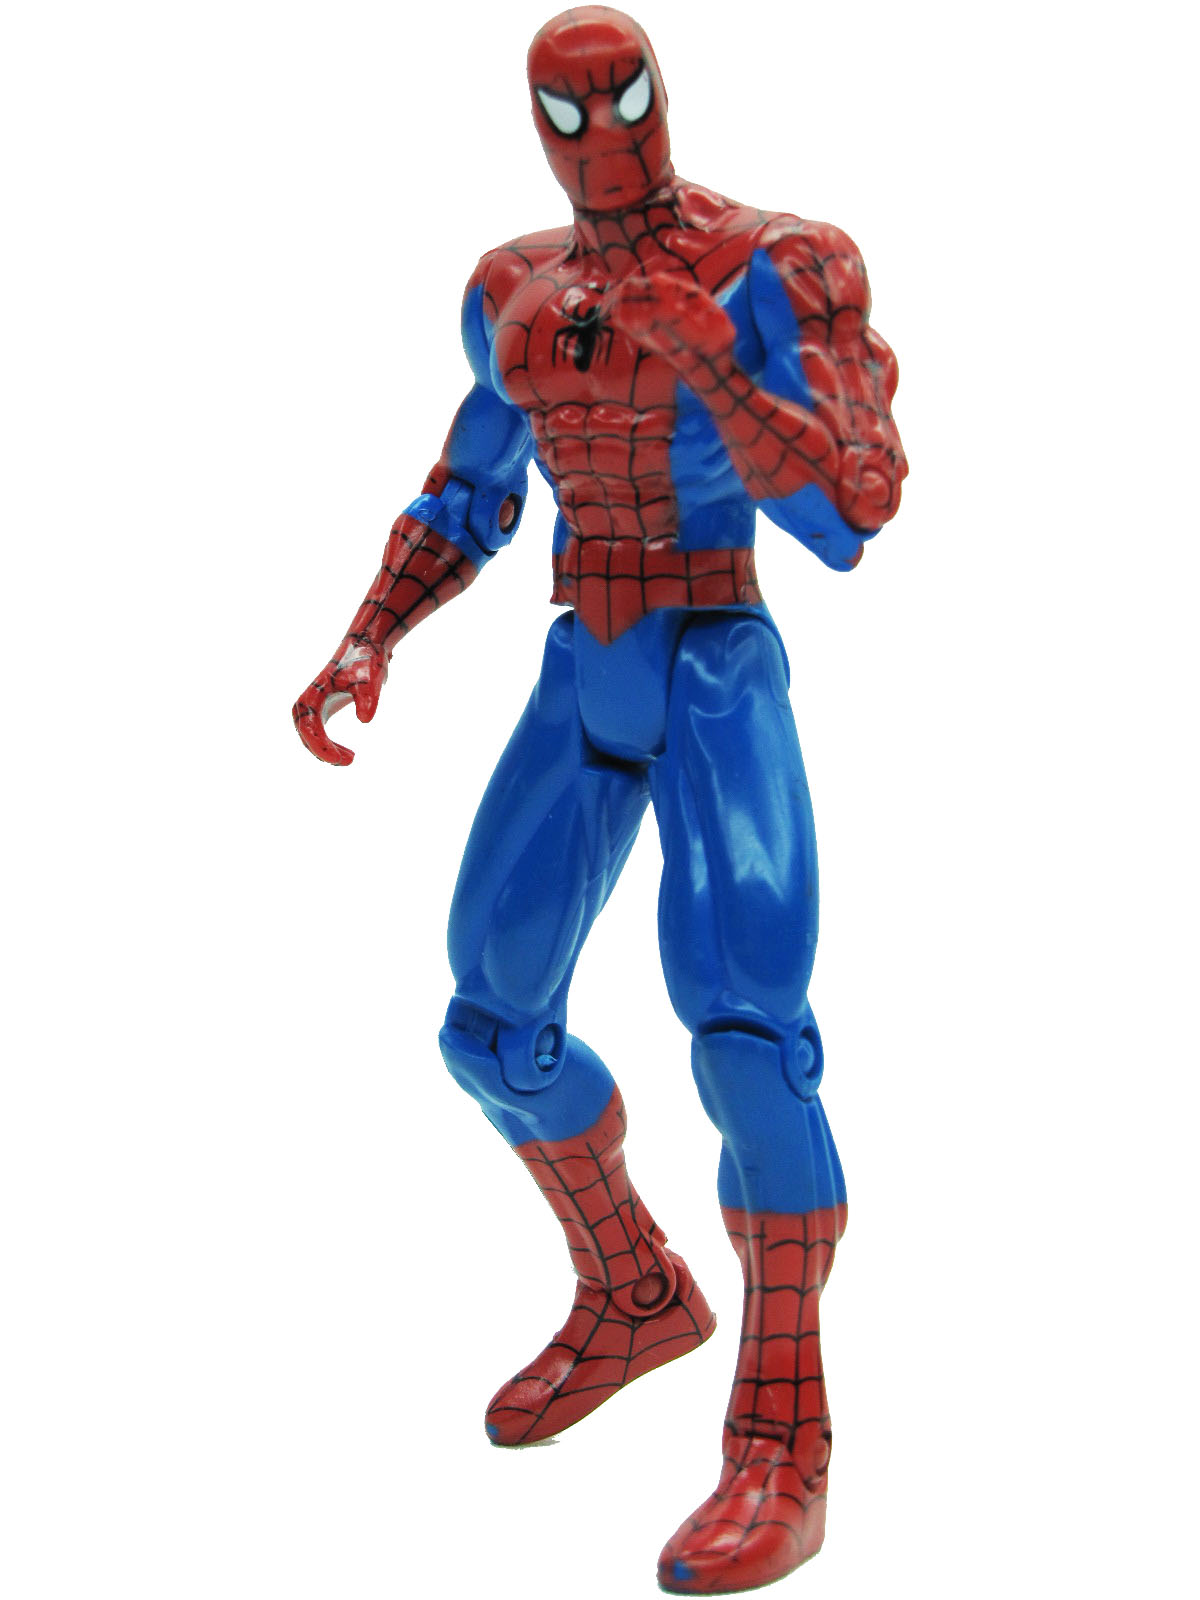 Spider-Man Animated Series Spider-Man Octo-Spidey Complete